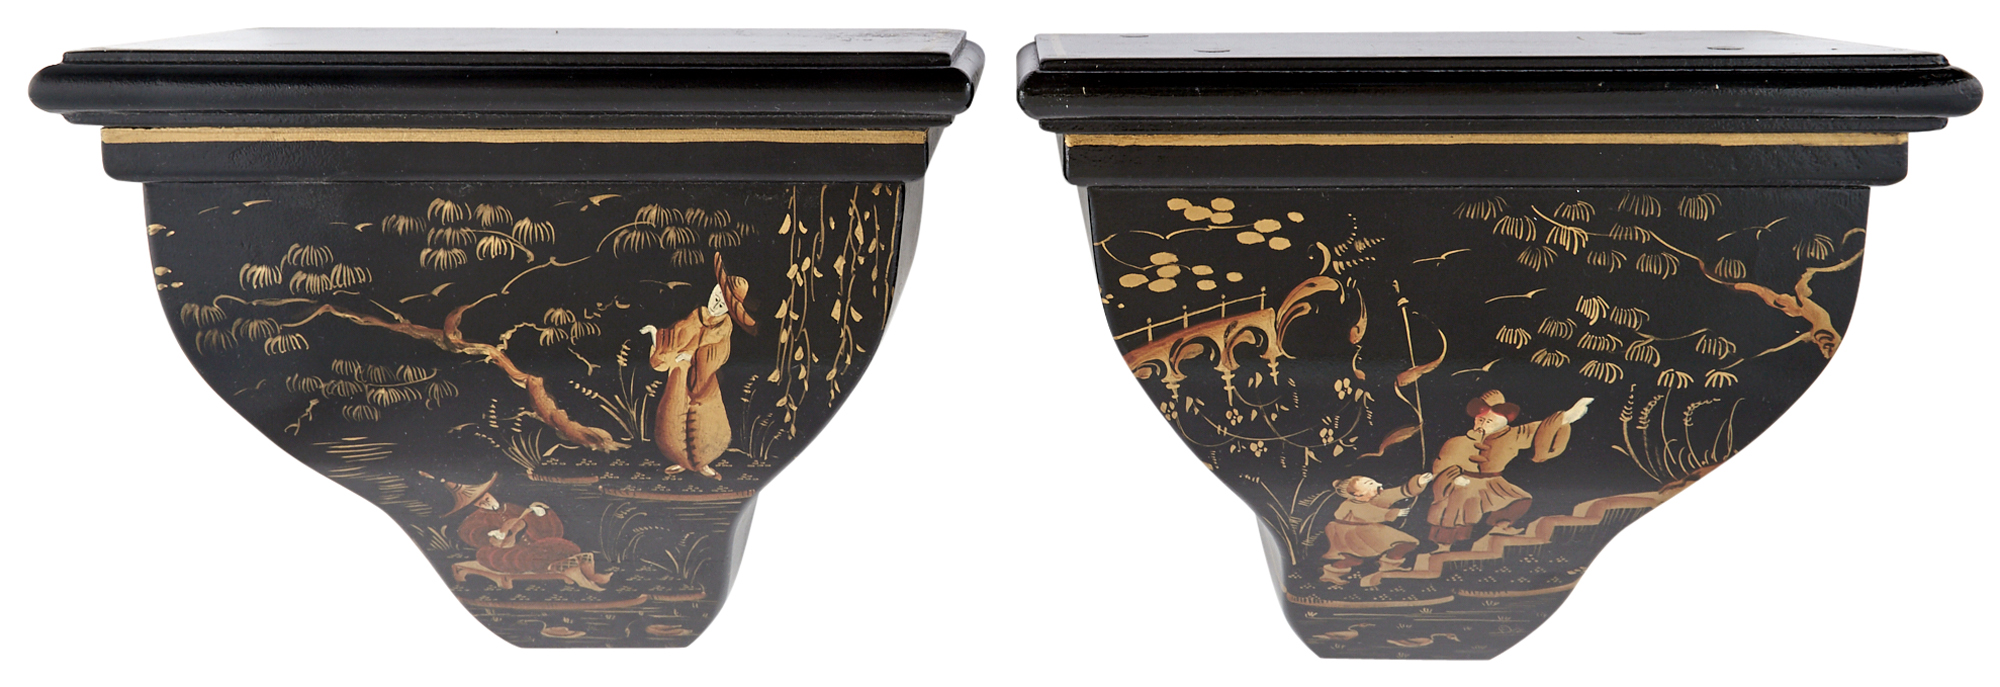 Lot image - Pair of Black Painted Chinoiserie Decorated Wall Brackets